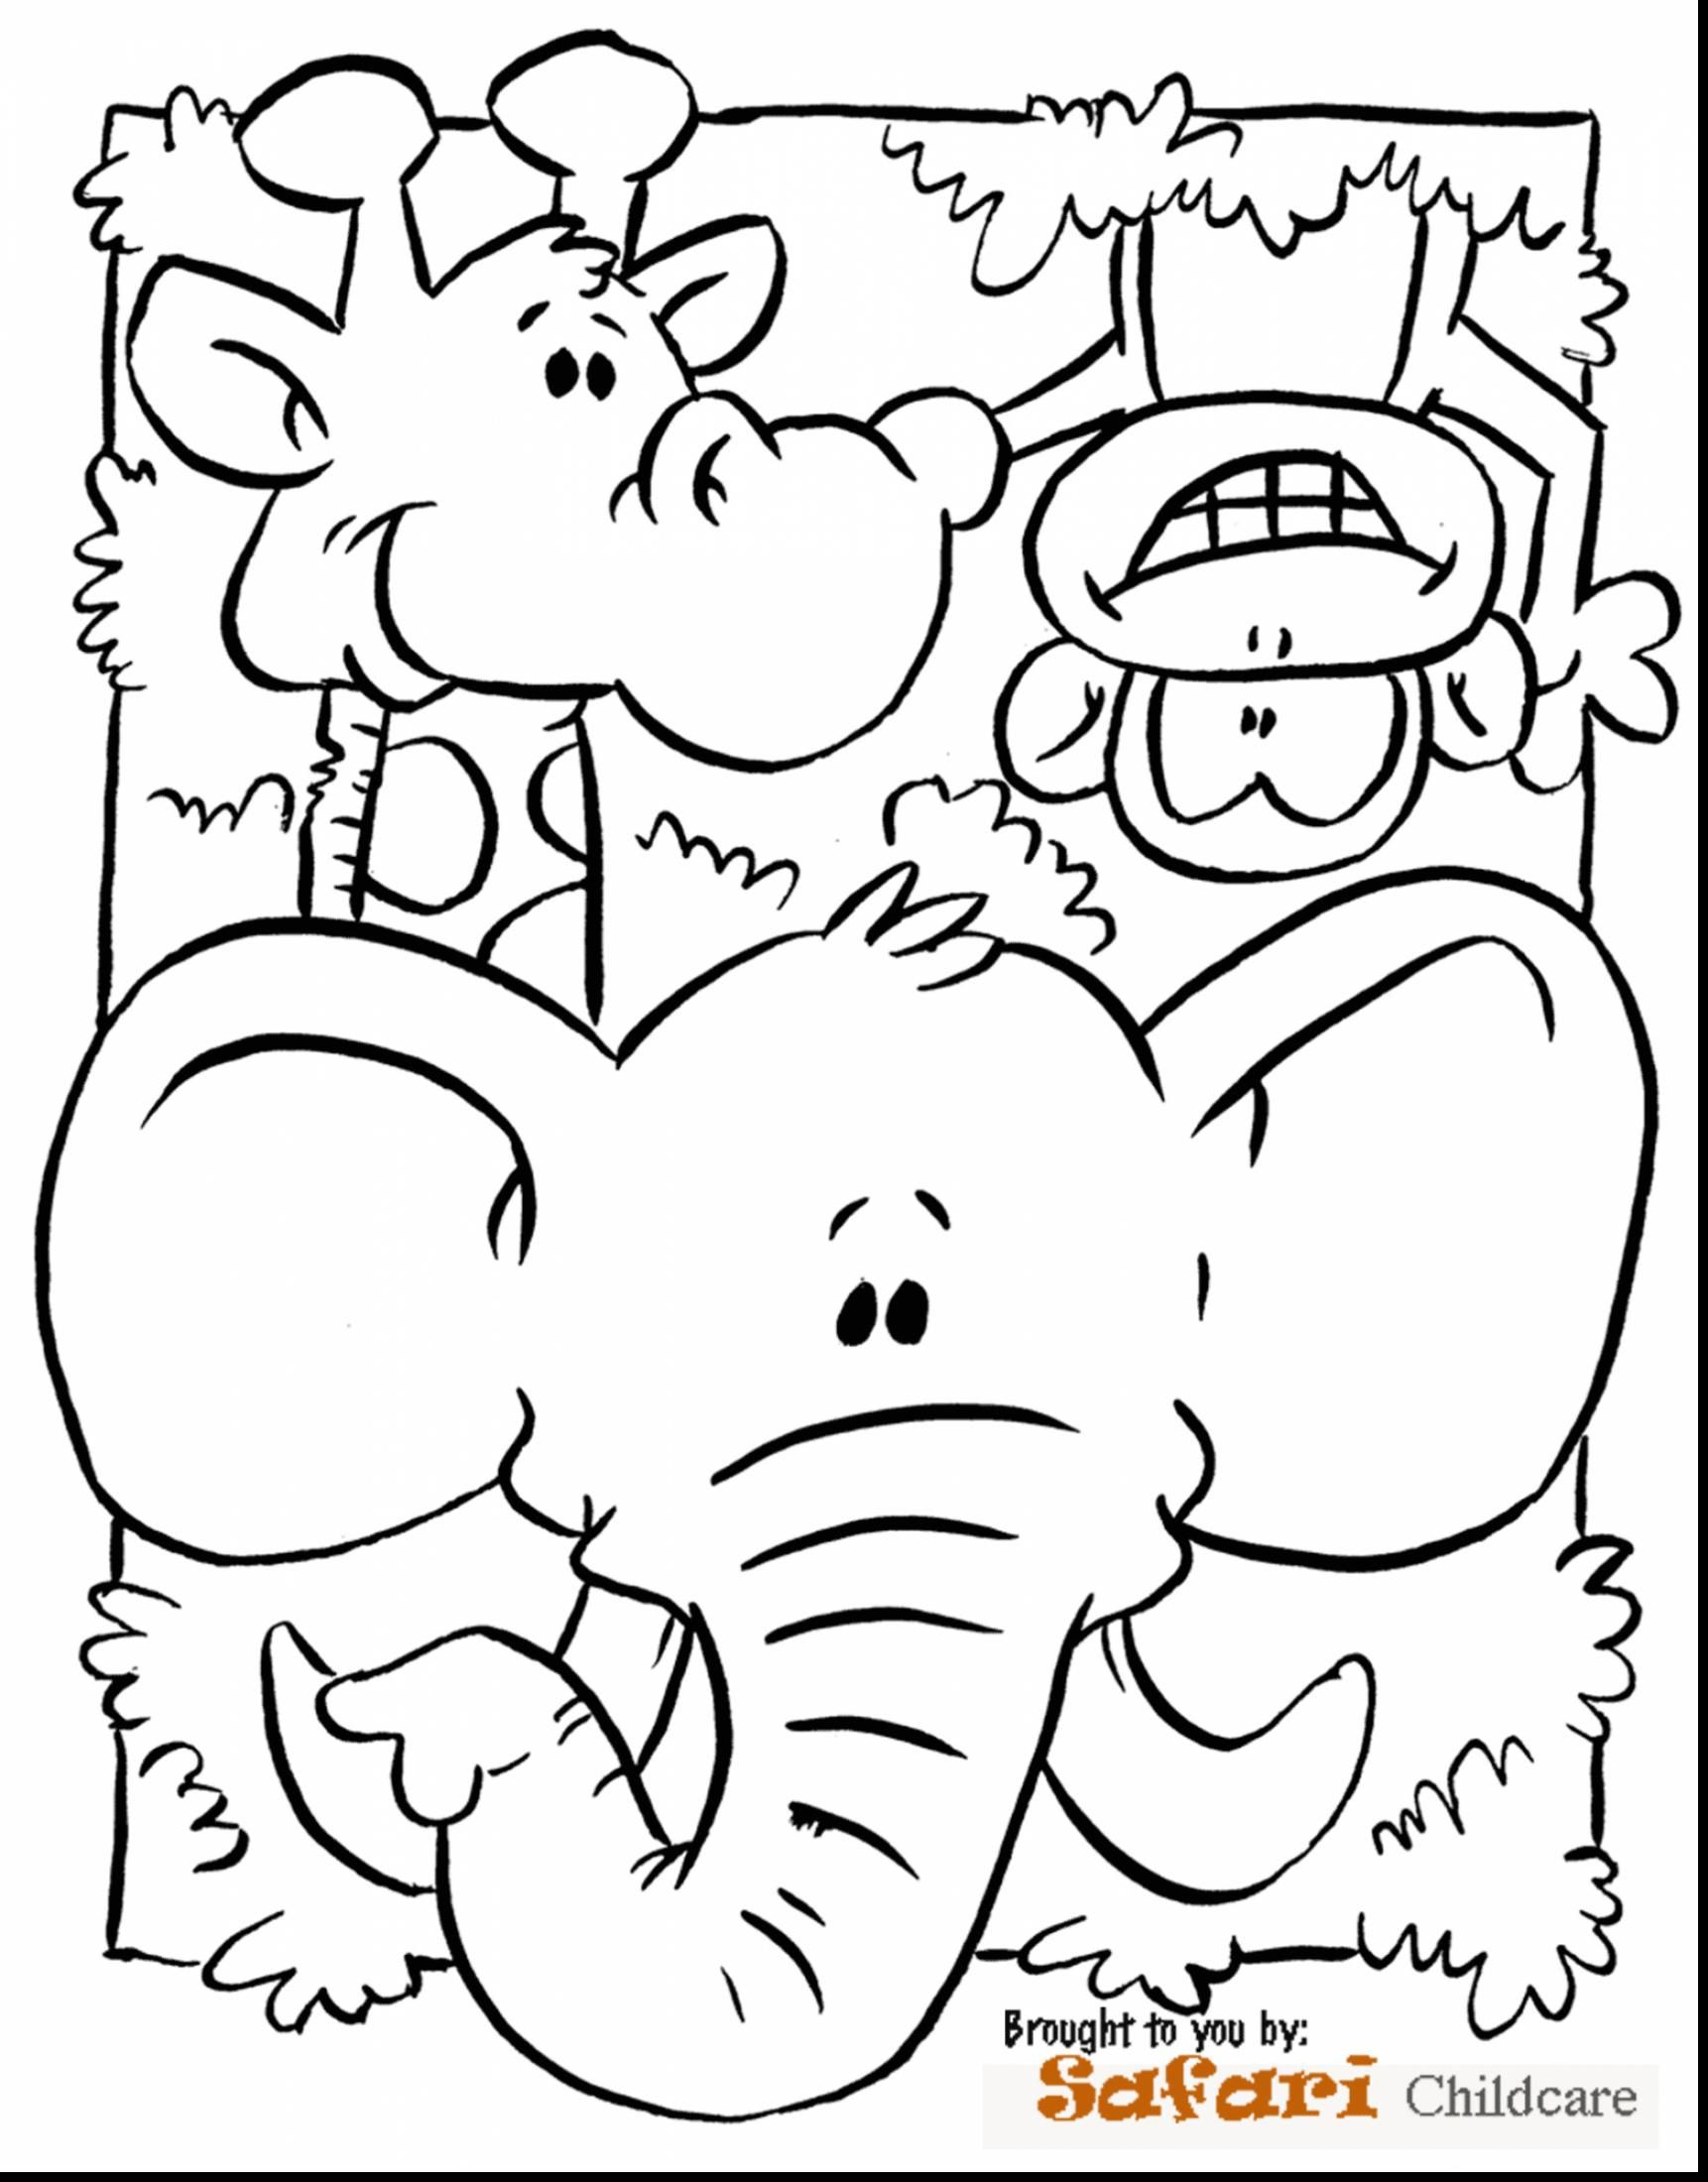 Remarkable Preschool Jungle Animals Coloring Pages With Page